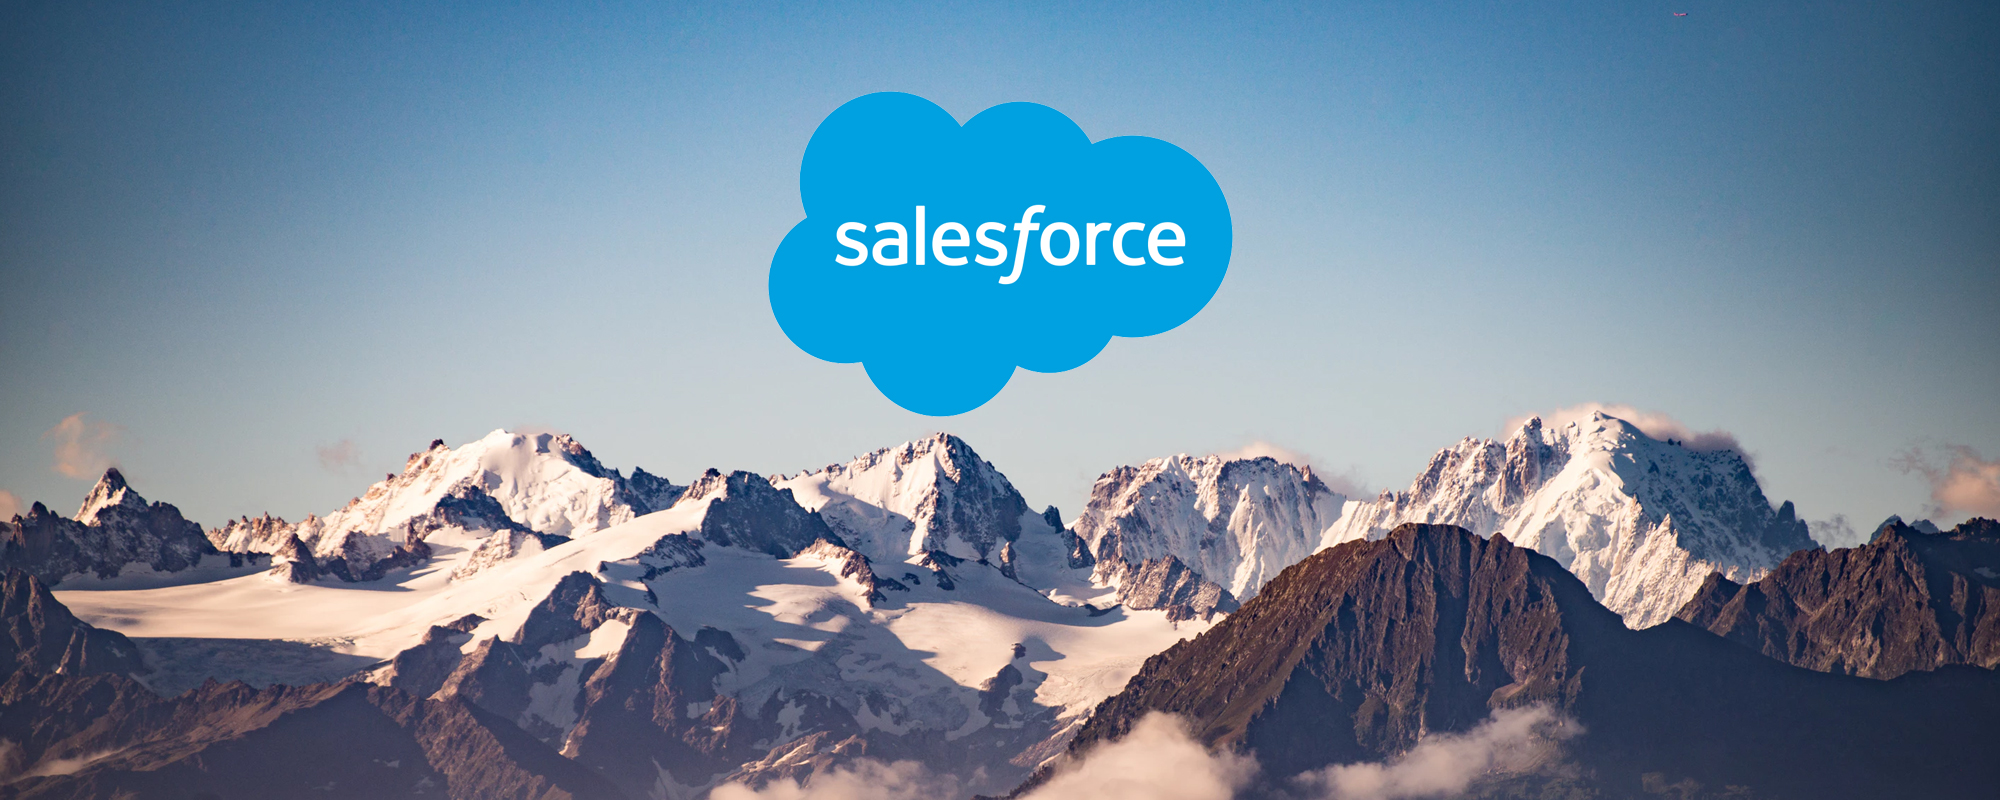 Hyve present at Salesforce User Group